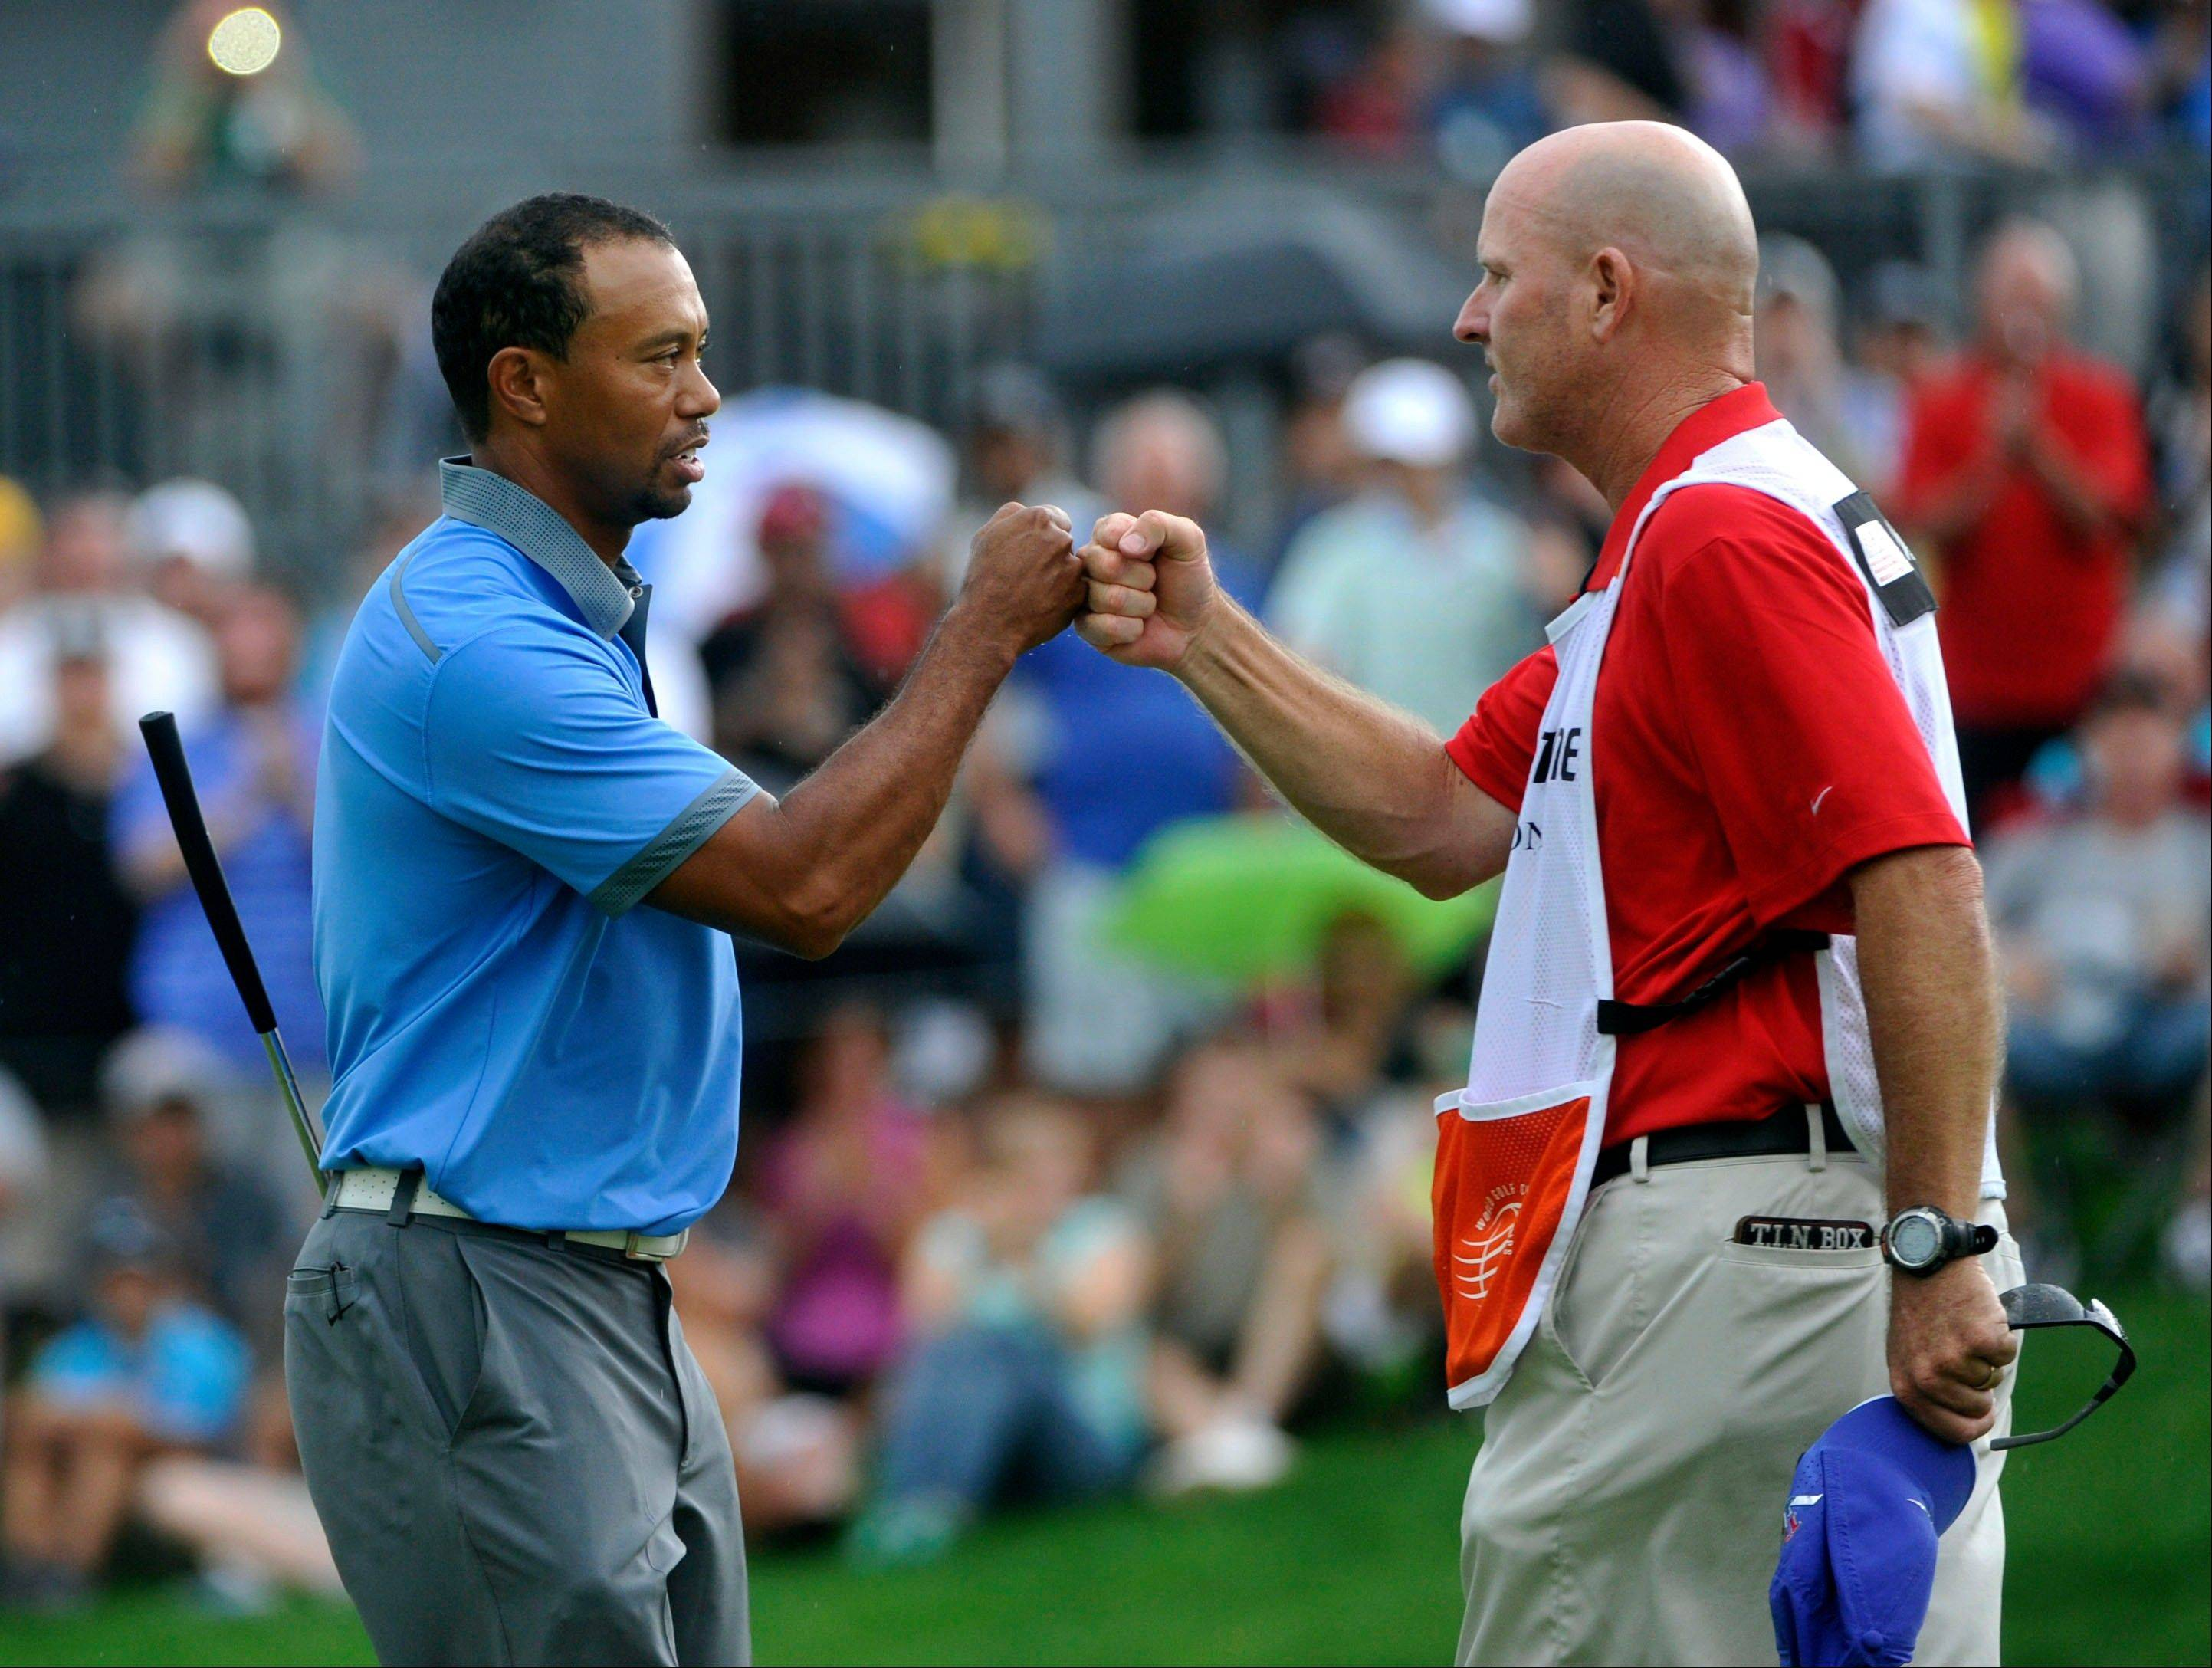 Tiger Woods celebrates with his caddy Joe LaCava after finishing his second round, at the WGC Bridgestone Invitational golf tournament, at Firestone Country Club in Akron, Ohio, Friday, Aug. 2, 2013. Woods shot a nine-under par 61, tying the tournament single-round record. (AP Photo/Phil Long)